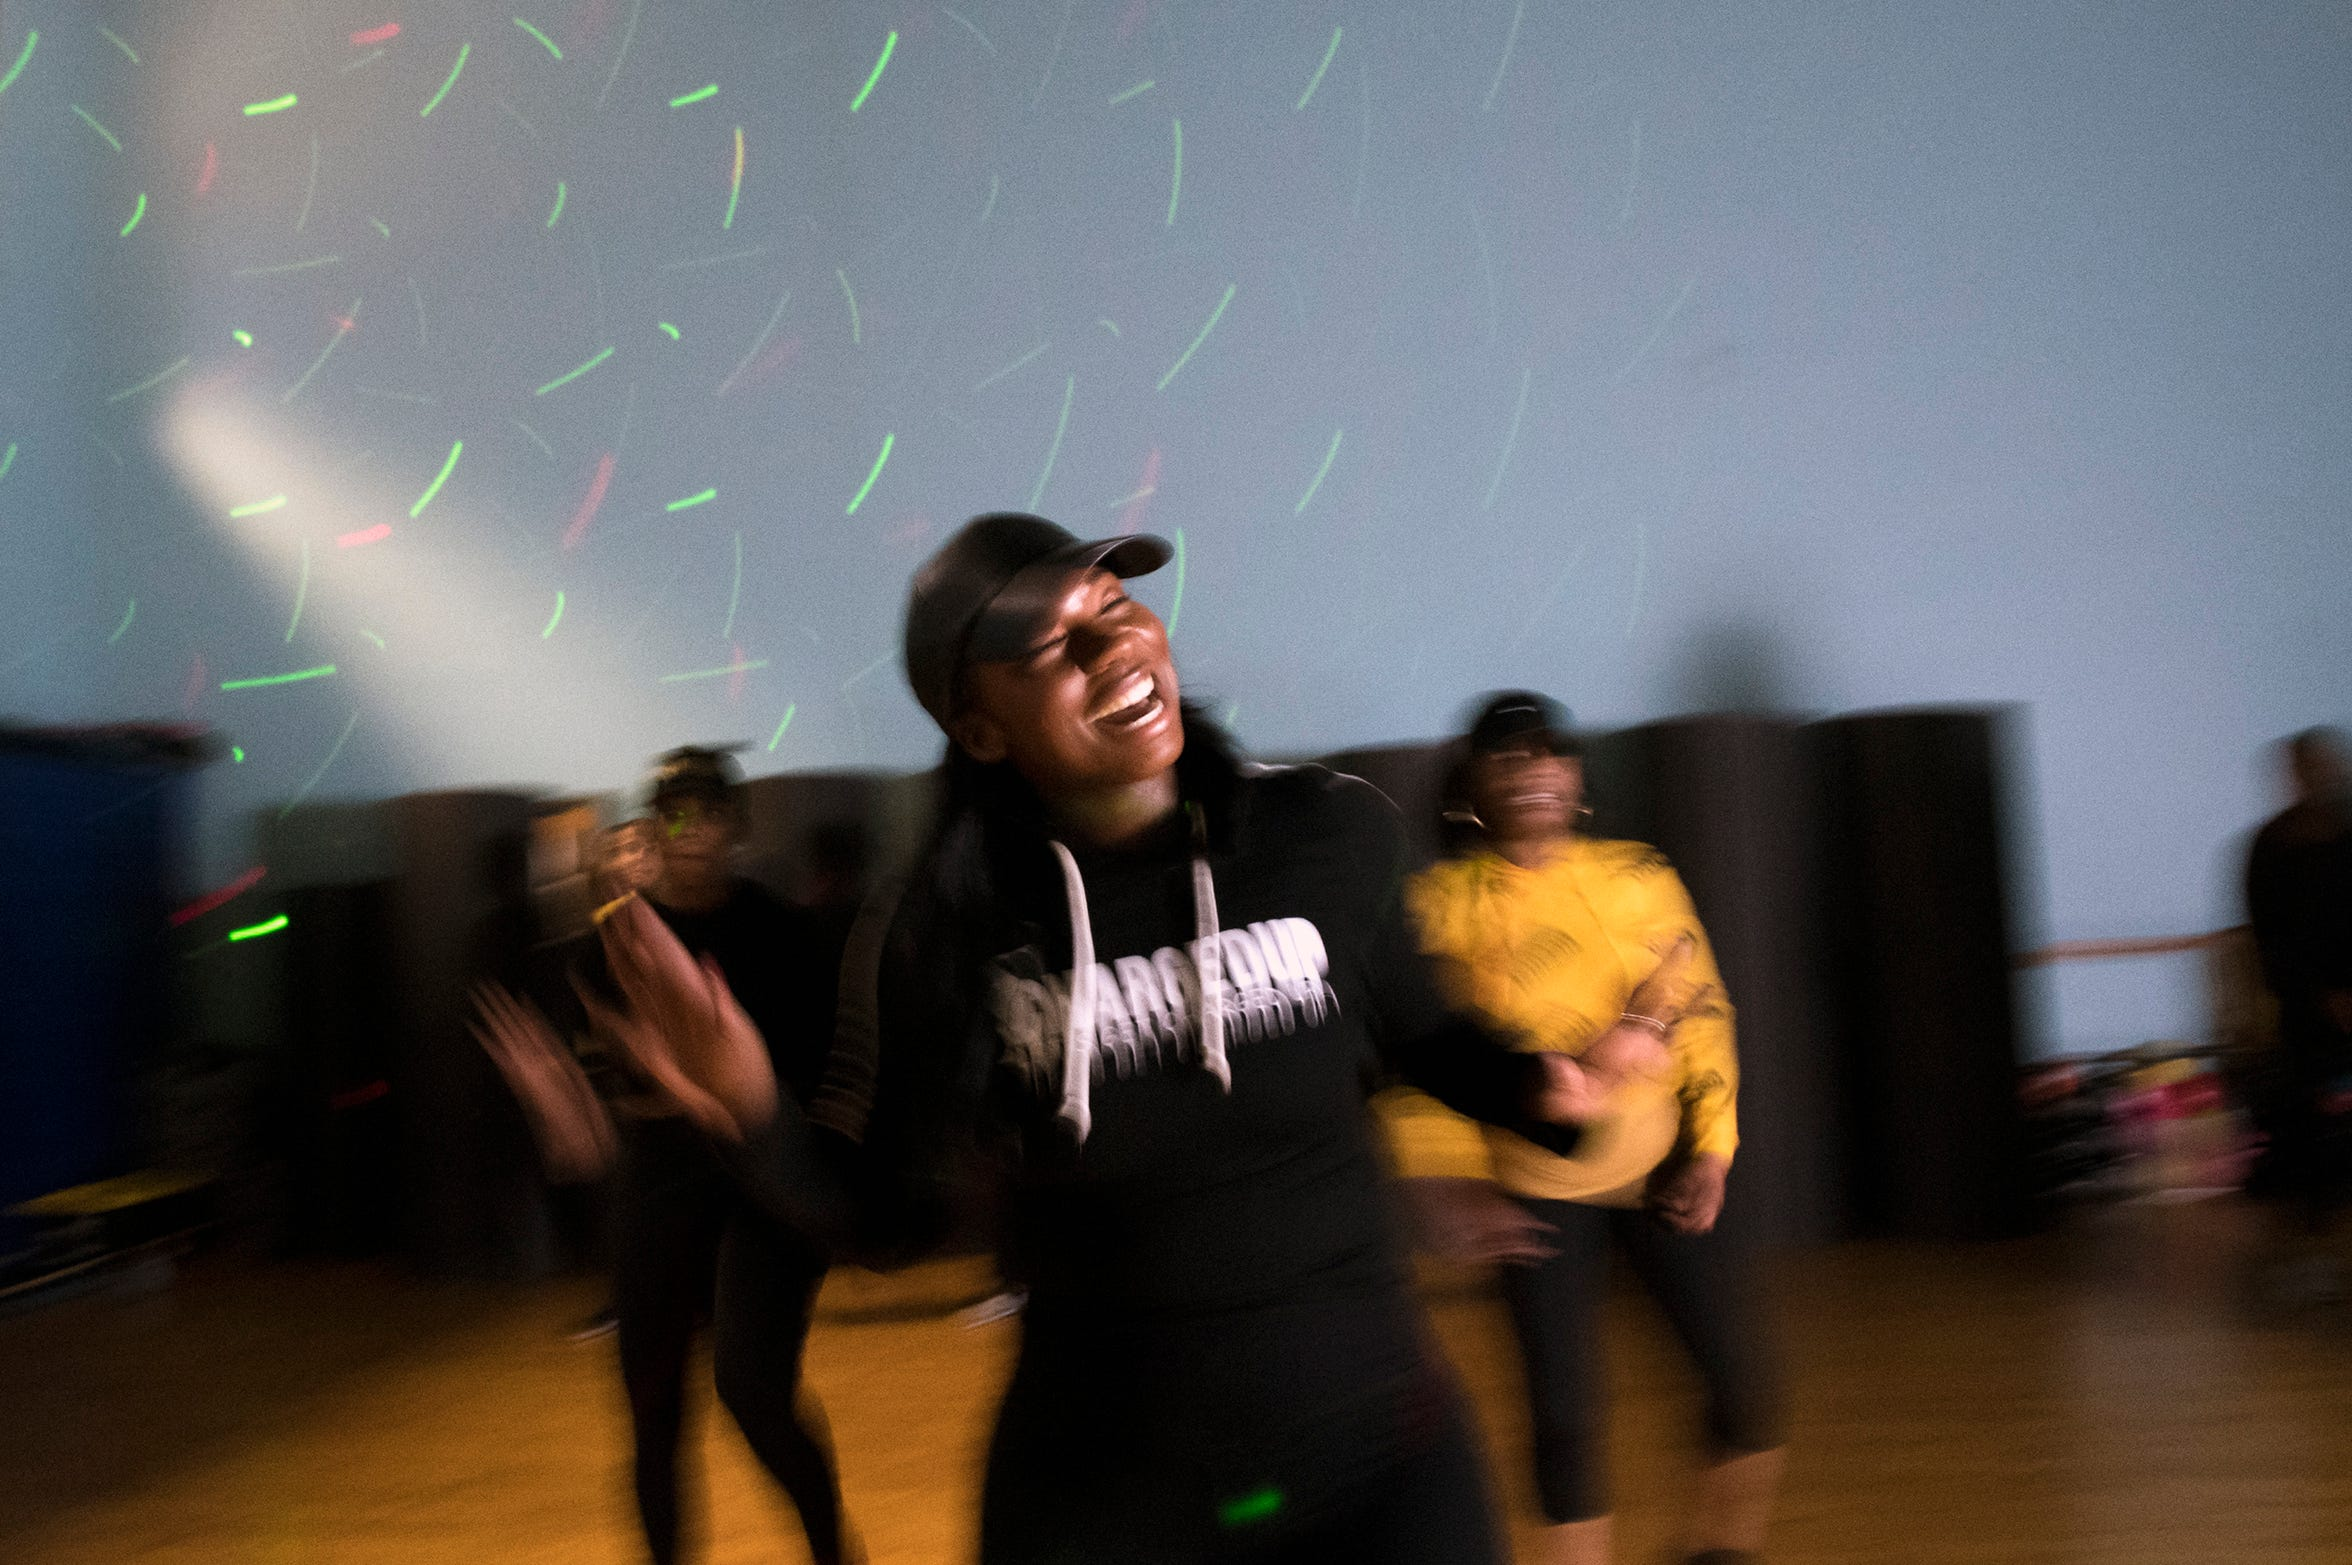 Ciji Carr-McManus, owner and founder of Charged Up Dance Fitness, has fun leading one of her fitness nightclub classes at JBMFit in Edgewater Park in Burlington County.